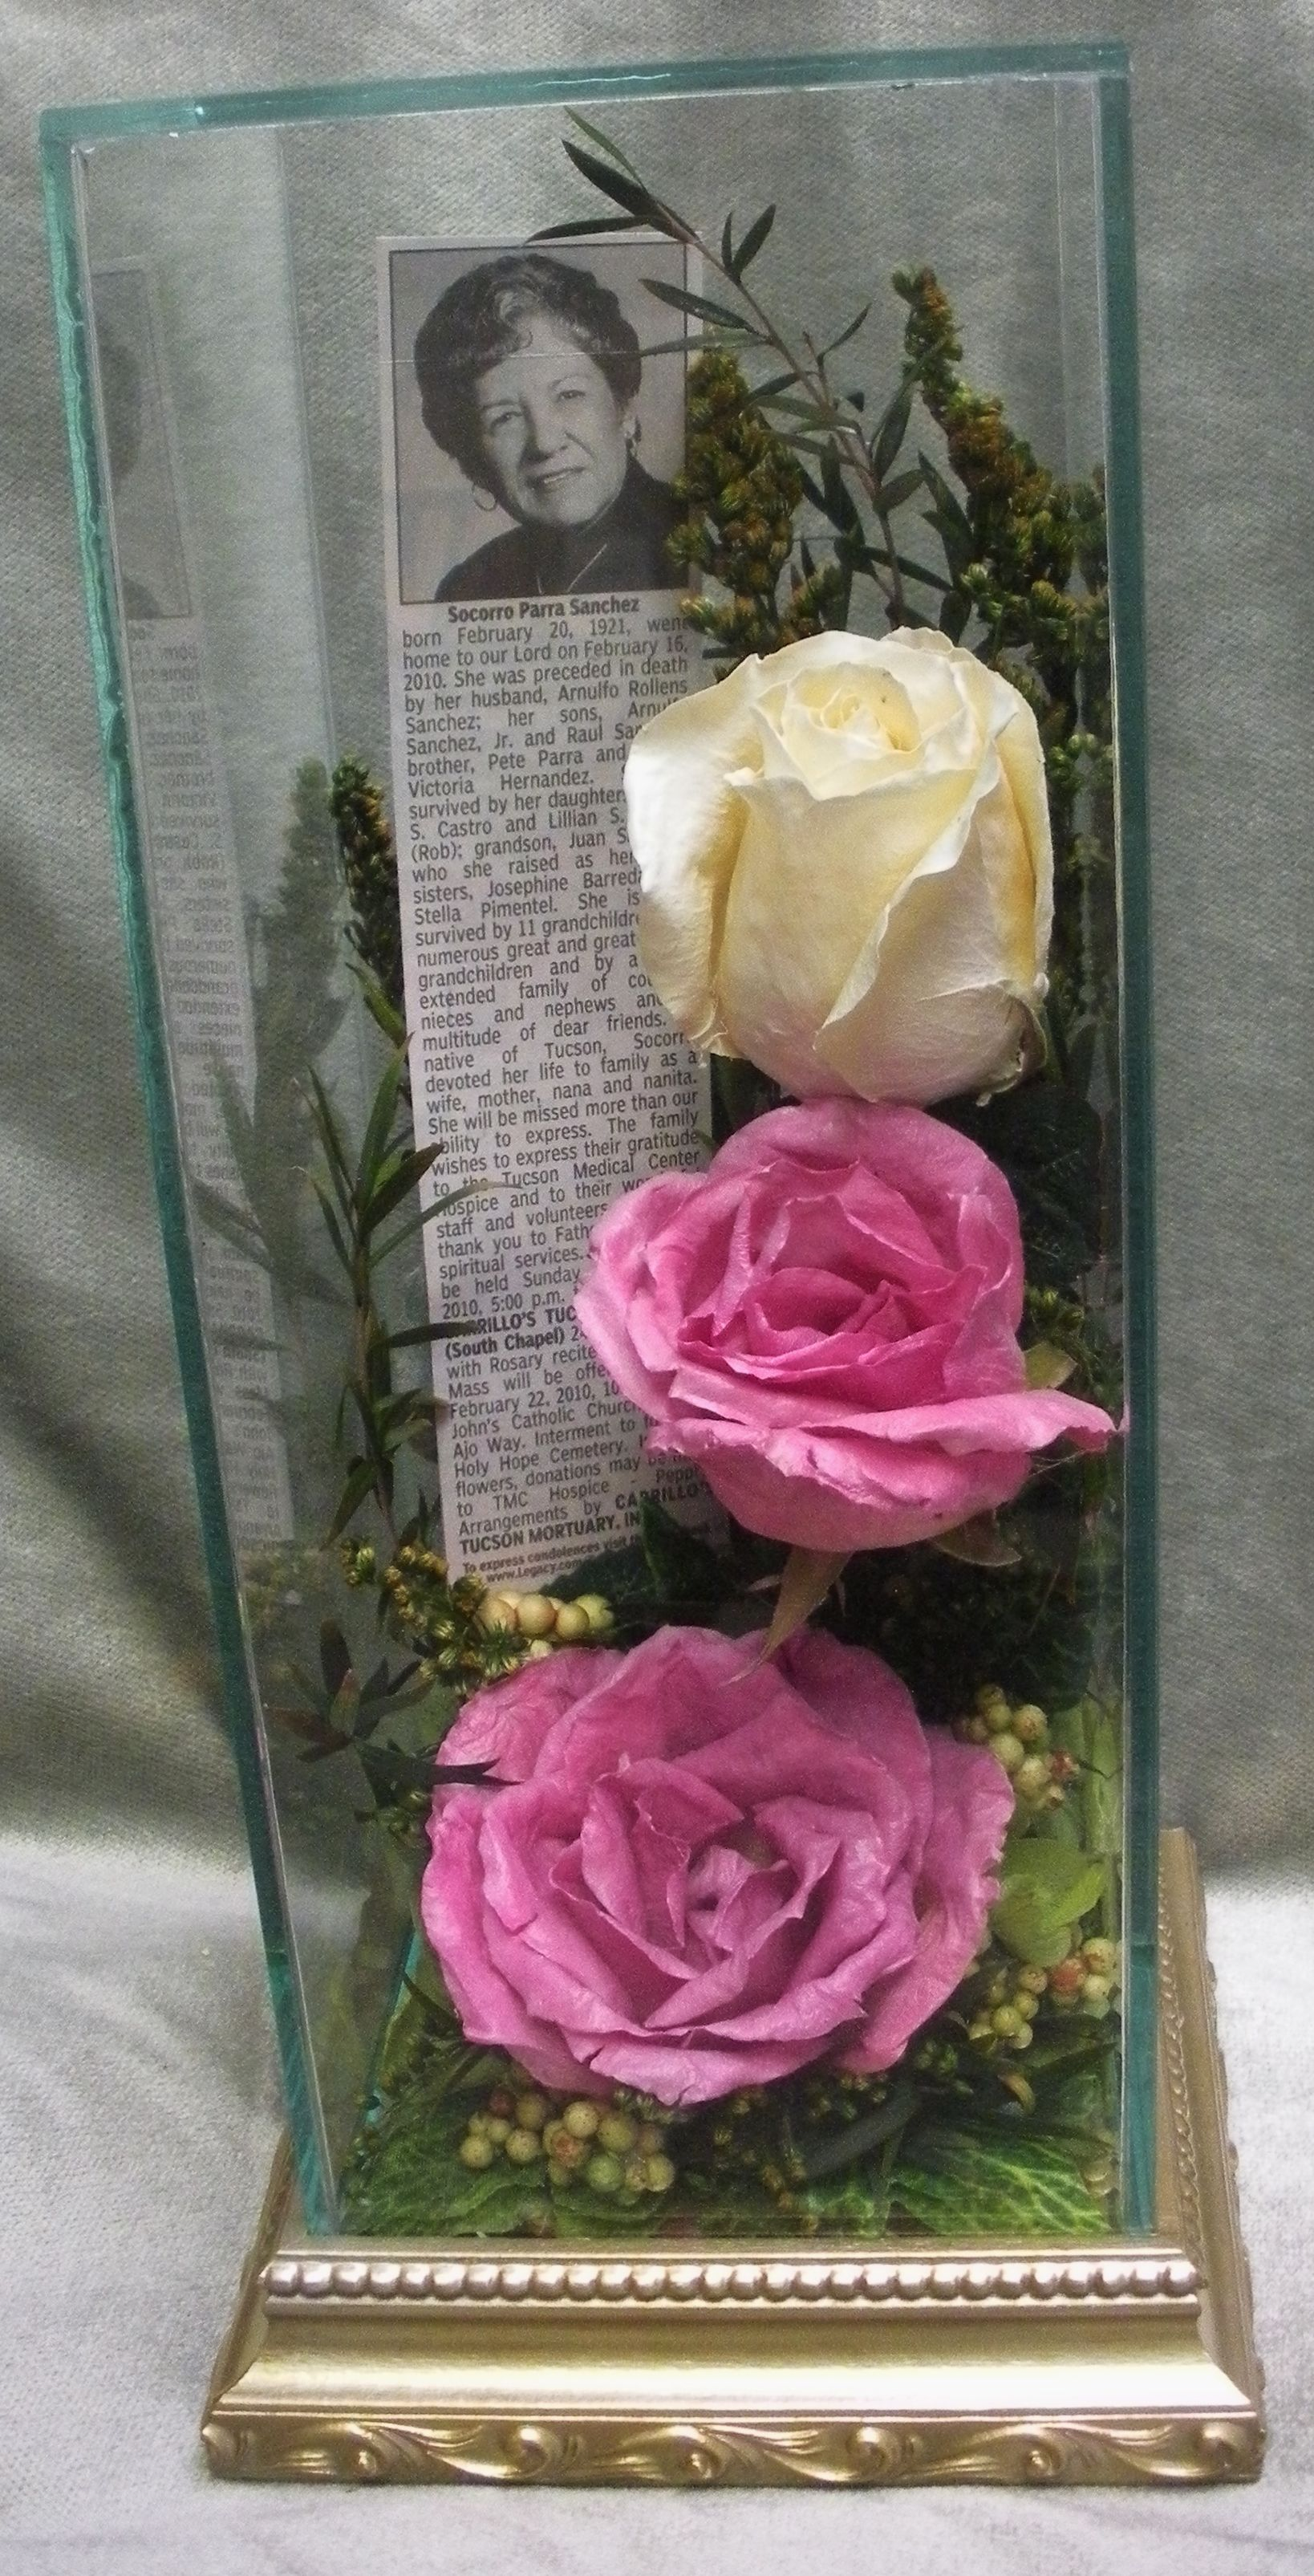 Preserved funeral tribute memorial flowers in glass case httpwww preserved funeral tribute memorial flowers in glass case httpfacebook izmirmasajfo Image collections